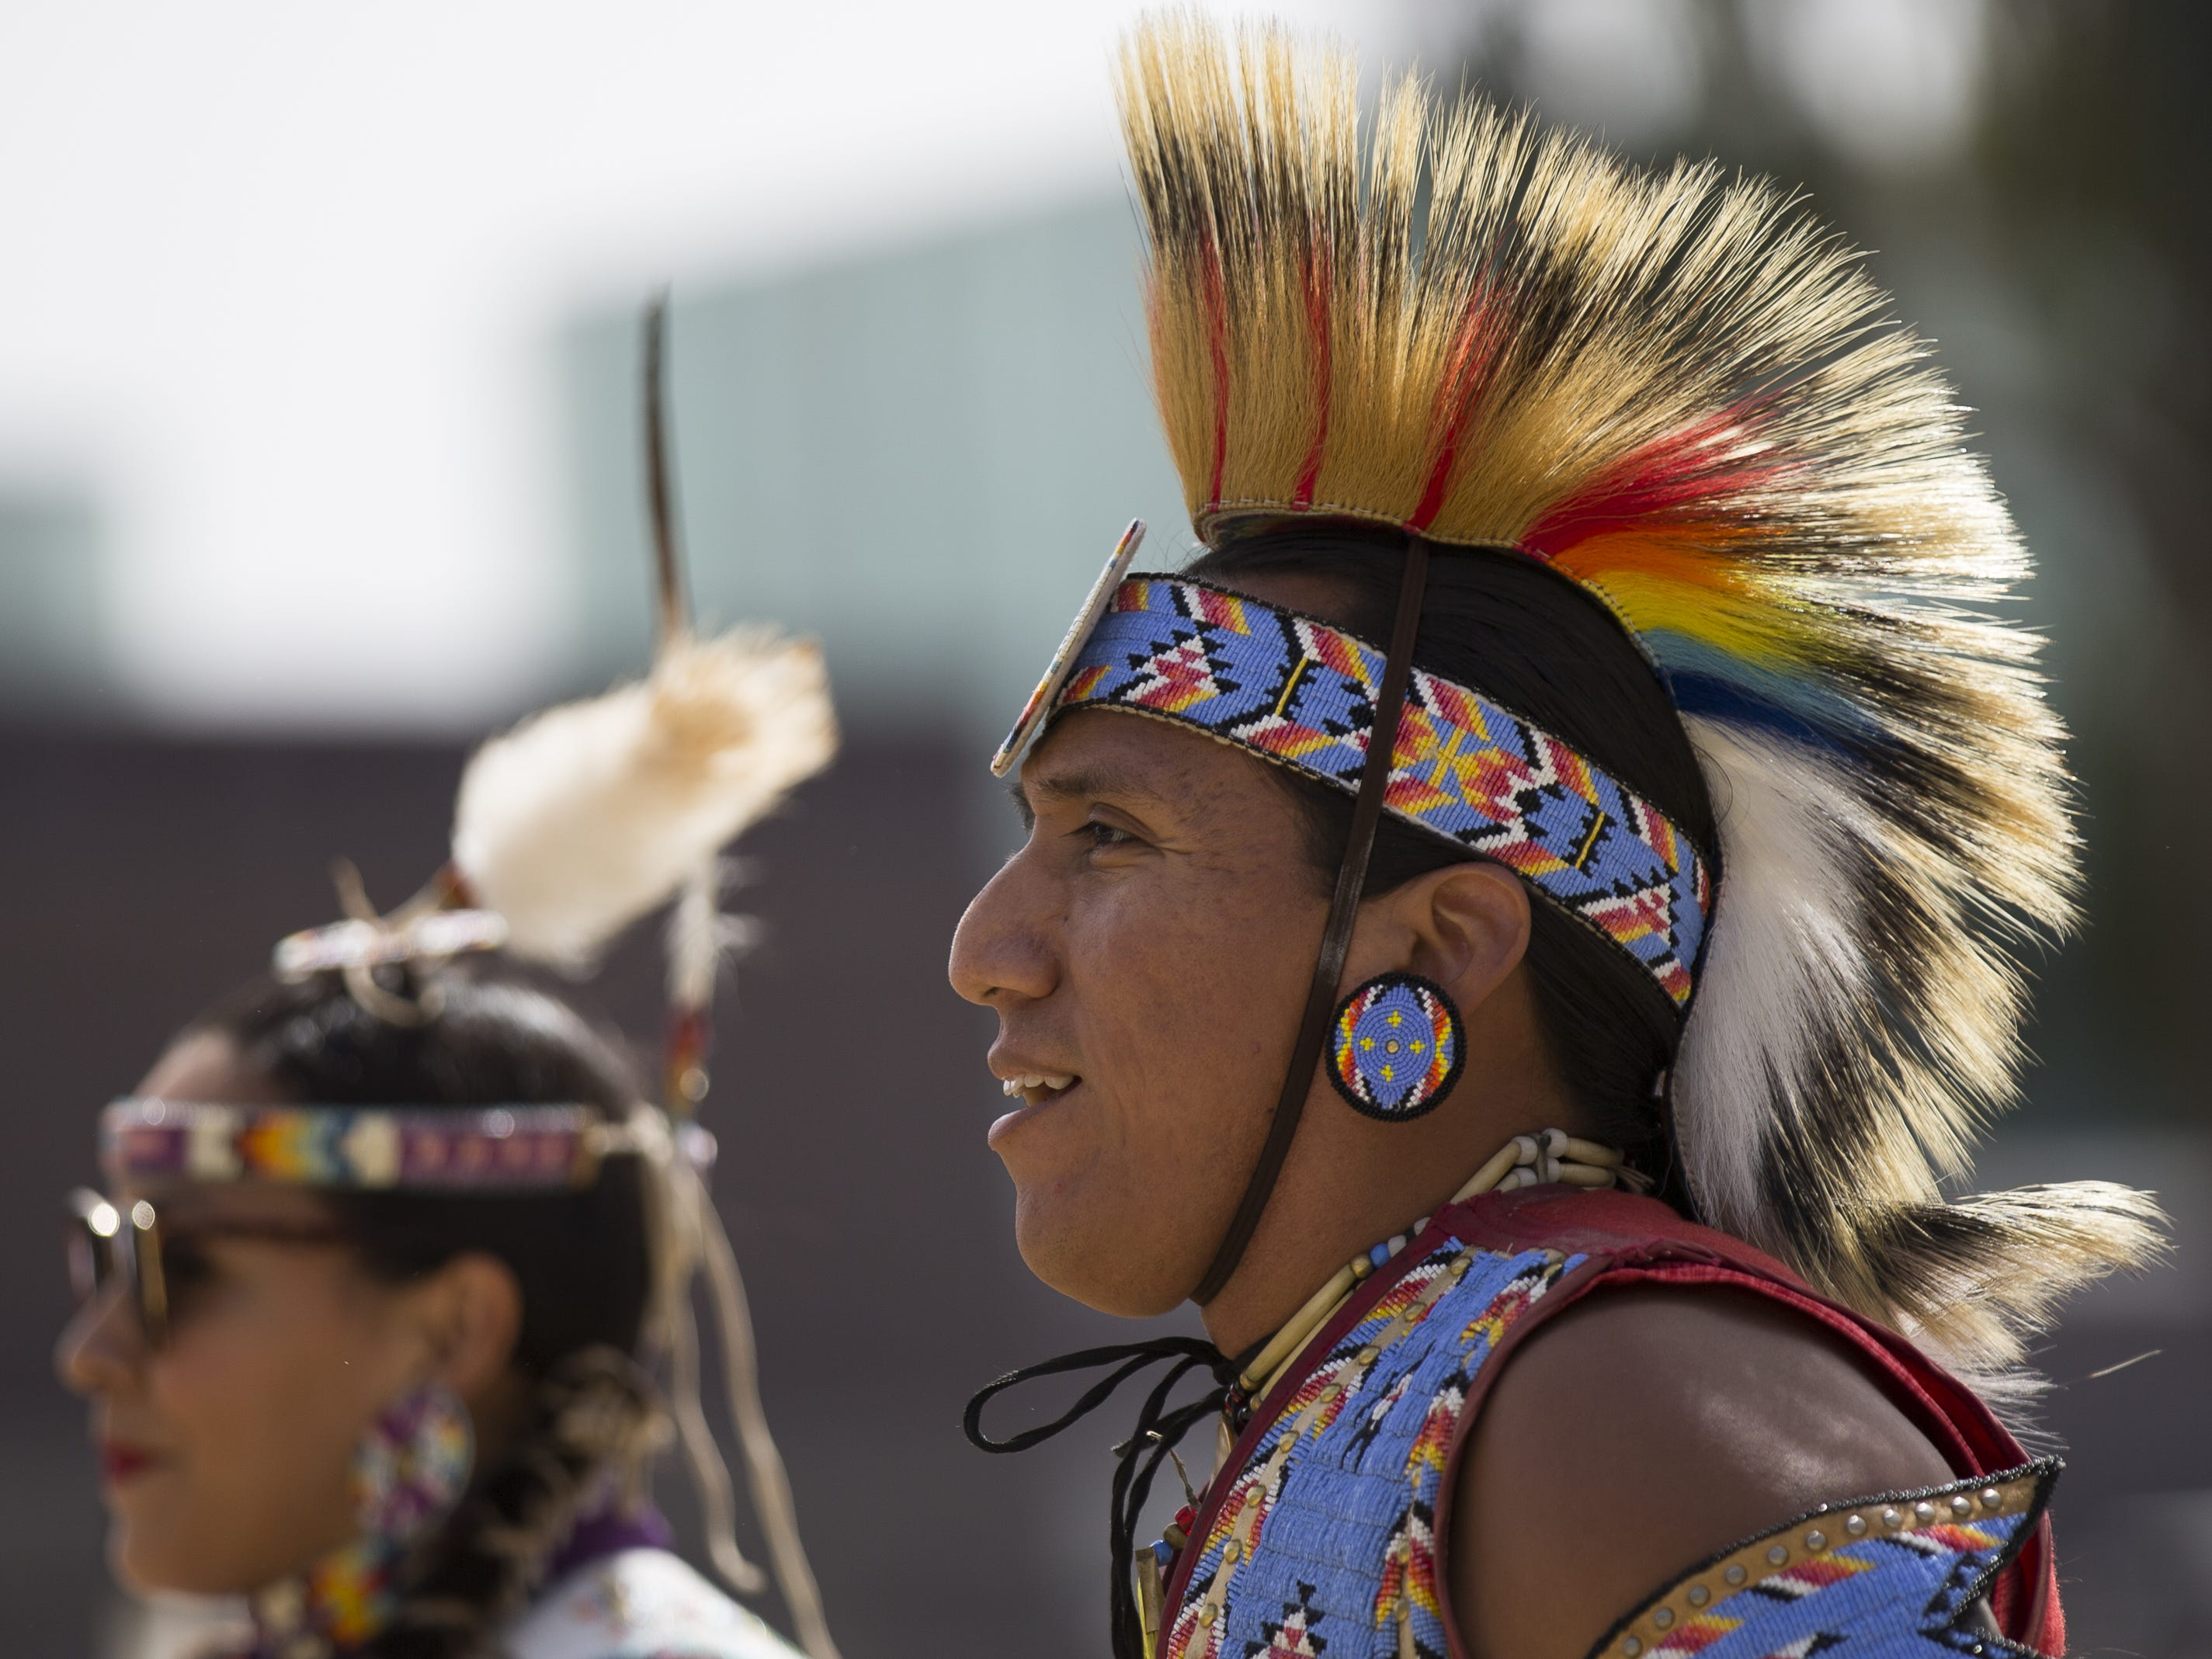 World champion hoop dancer Tony Duncan (right) dances at the Native Two Spirit Powwow at South Mountain Community College in Phoenix, Ariz. on Saturday, March 9, 2019. The powwow was the first of its kind in Arizona, featuring members who identified as two spirit, and members who did not, dancing together.